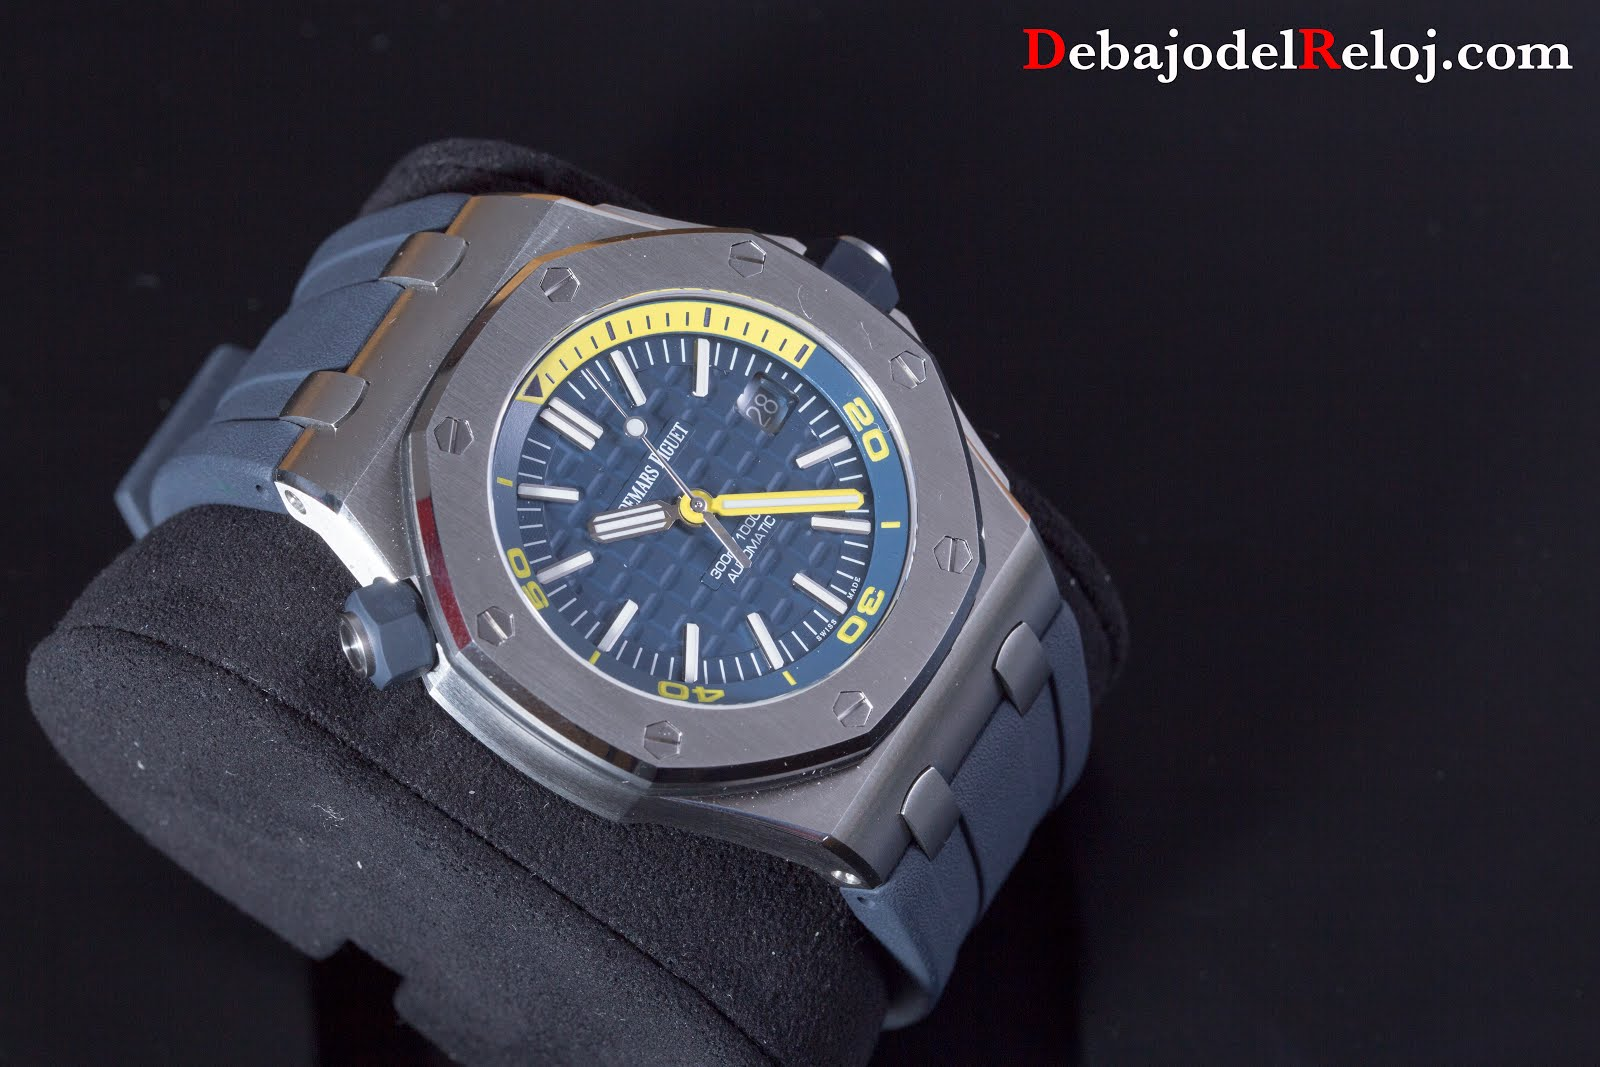 Audemars Piquet ROYAL OAK OFFSHORE DIVER 6